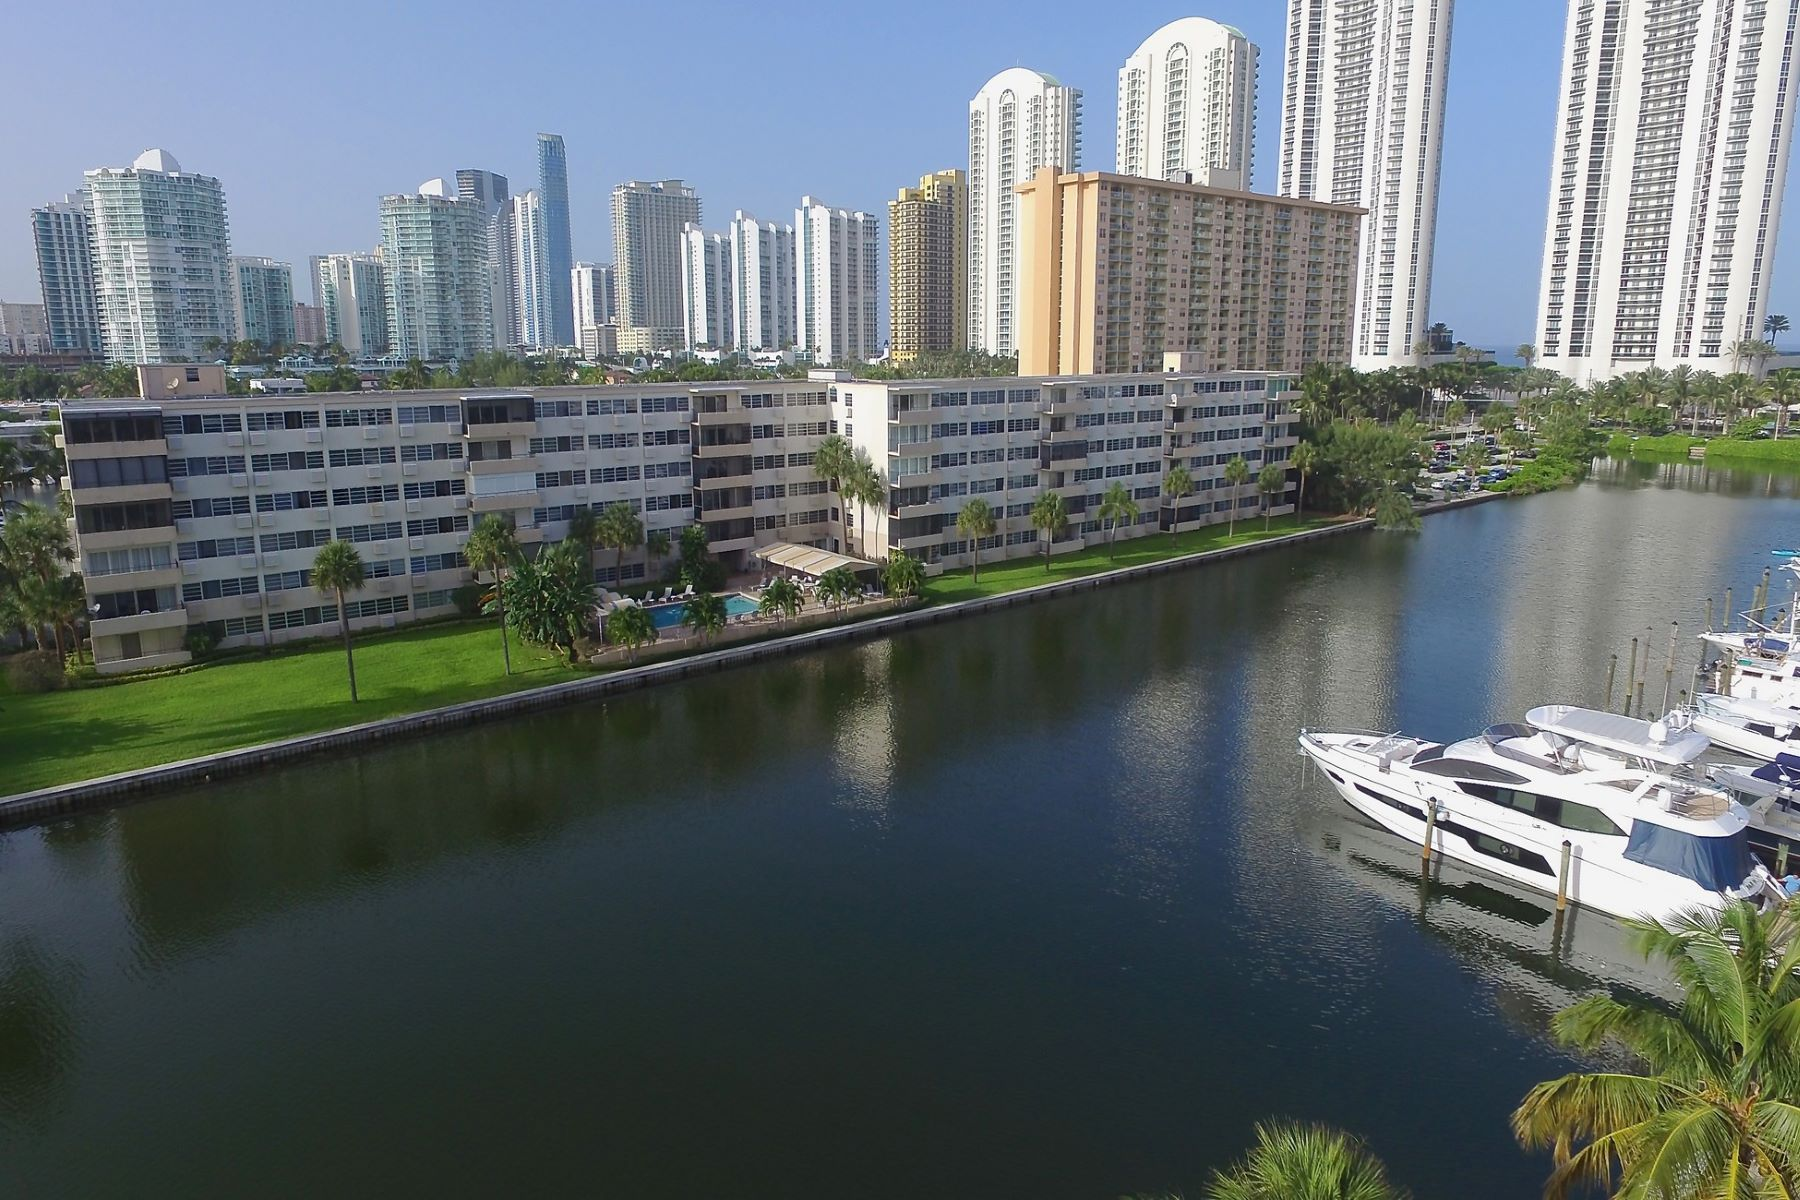 Condominium for Rent at 220 Kings Point Dr. # 205 220 Kings Point Drive # 205 North Miami Beach, Florida 33160 United States